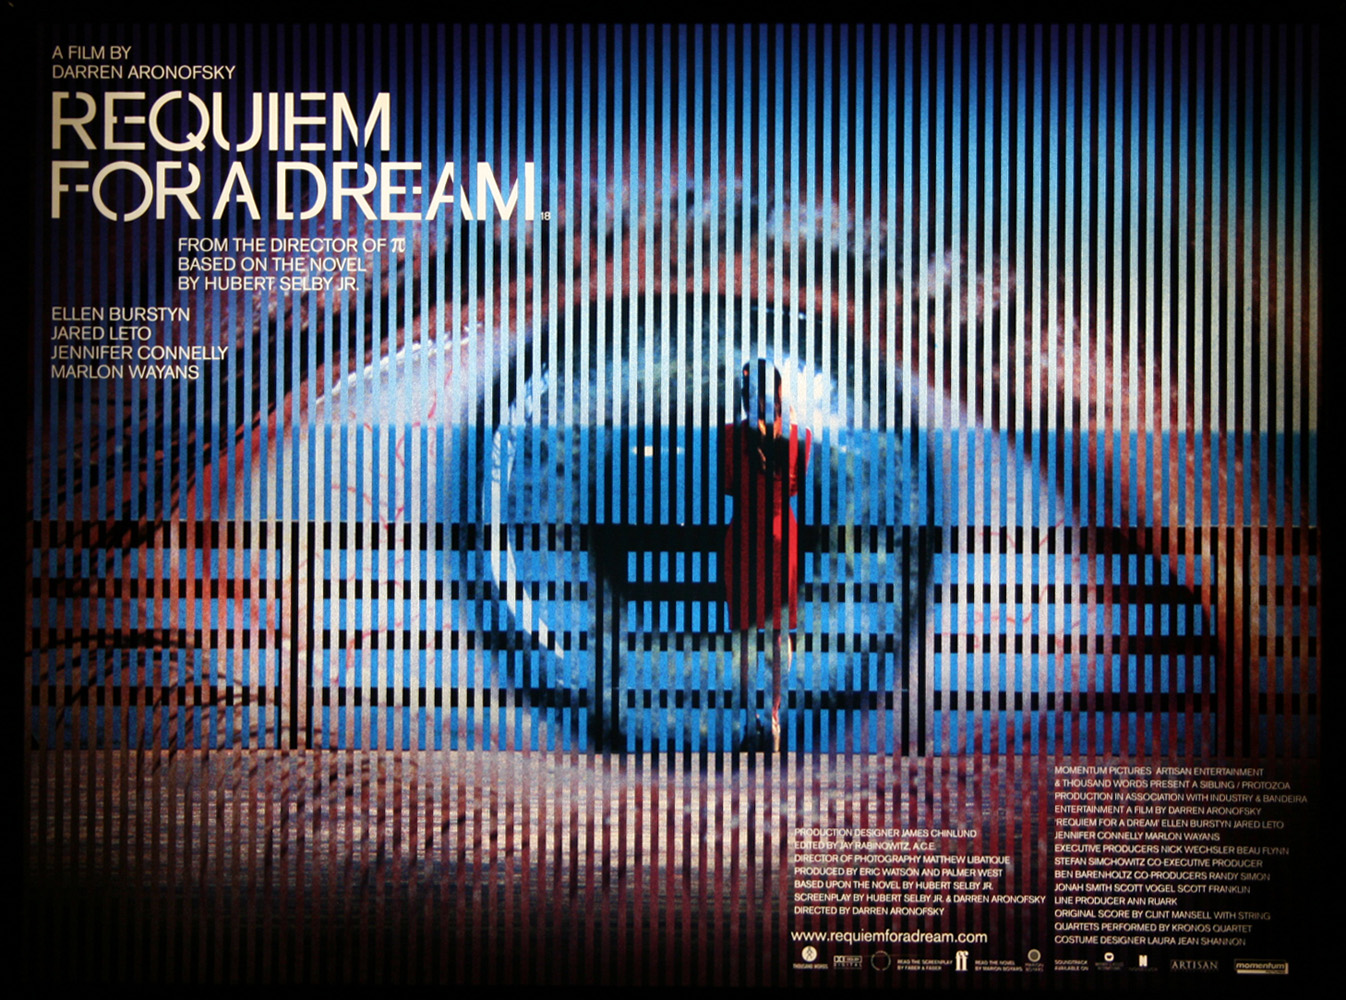 requiem for a dream movie Darren aronofsky's requiem for a dream proved controversial from the outset so much so that the motion picture association of america (mpaa) refused to give this dark and disturbing movie (based on the book by hubert selby jr) a rating on its release in 2000.